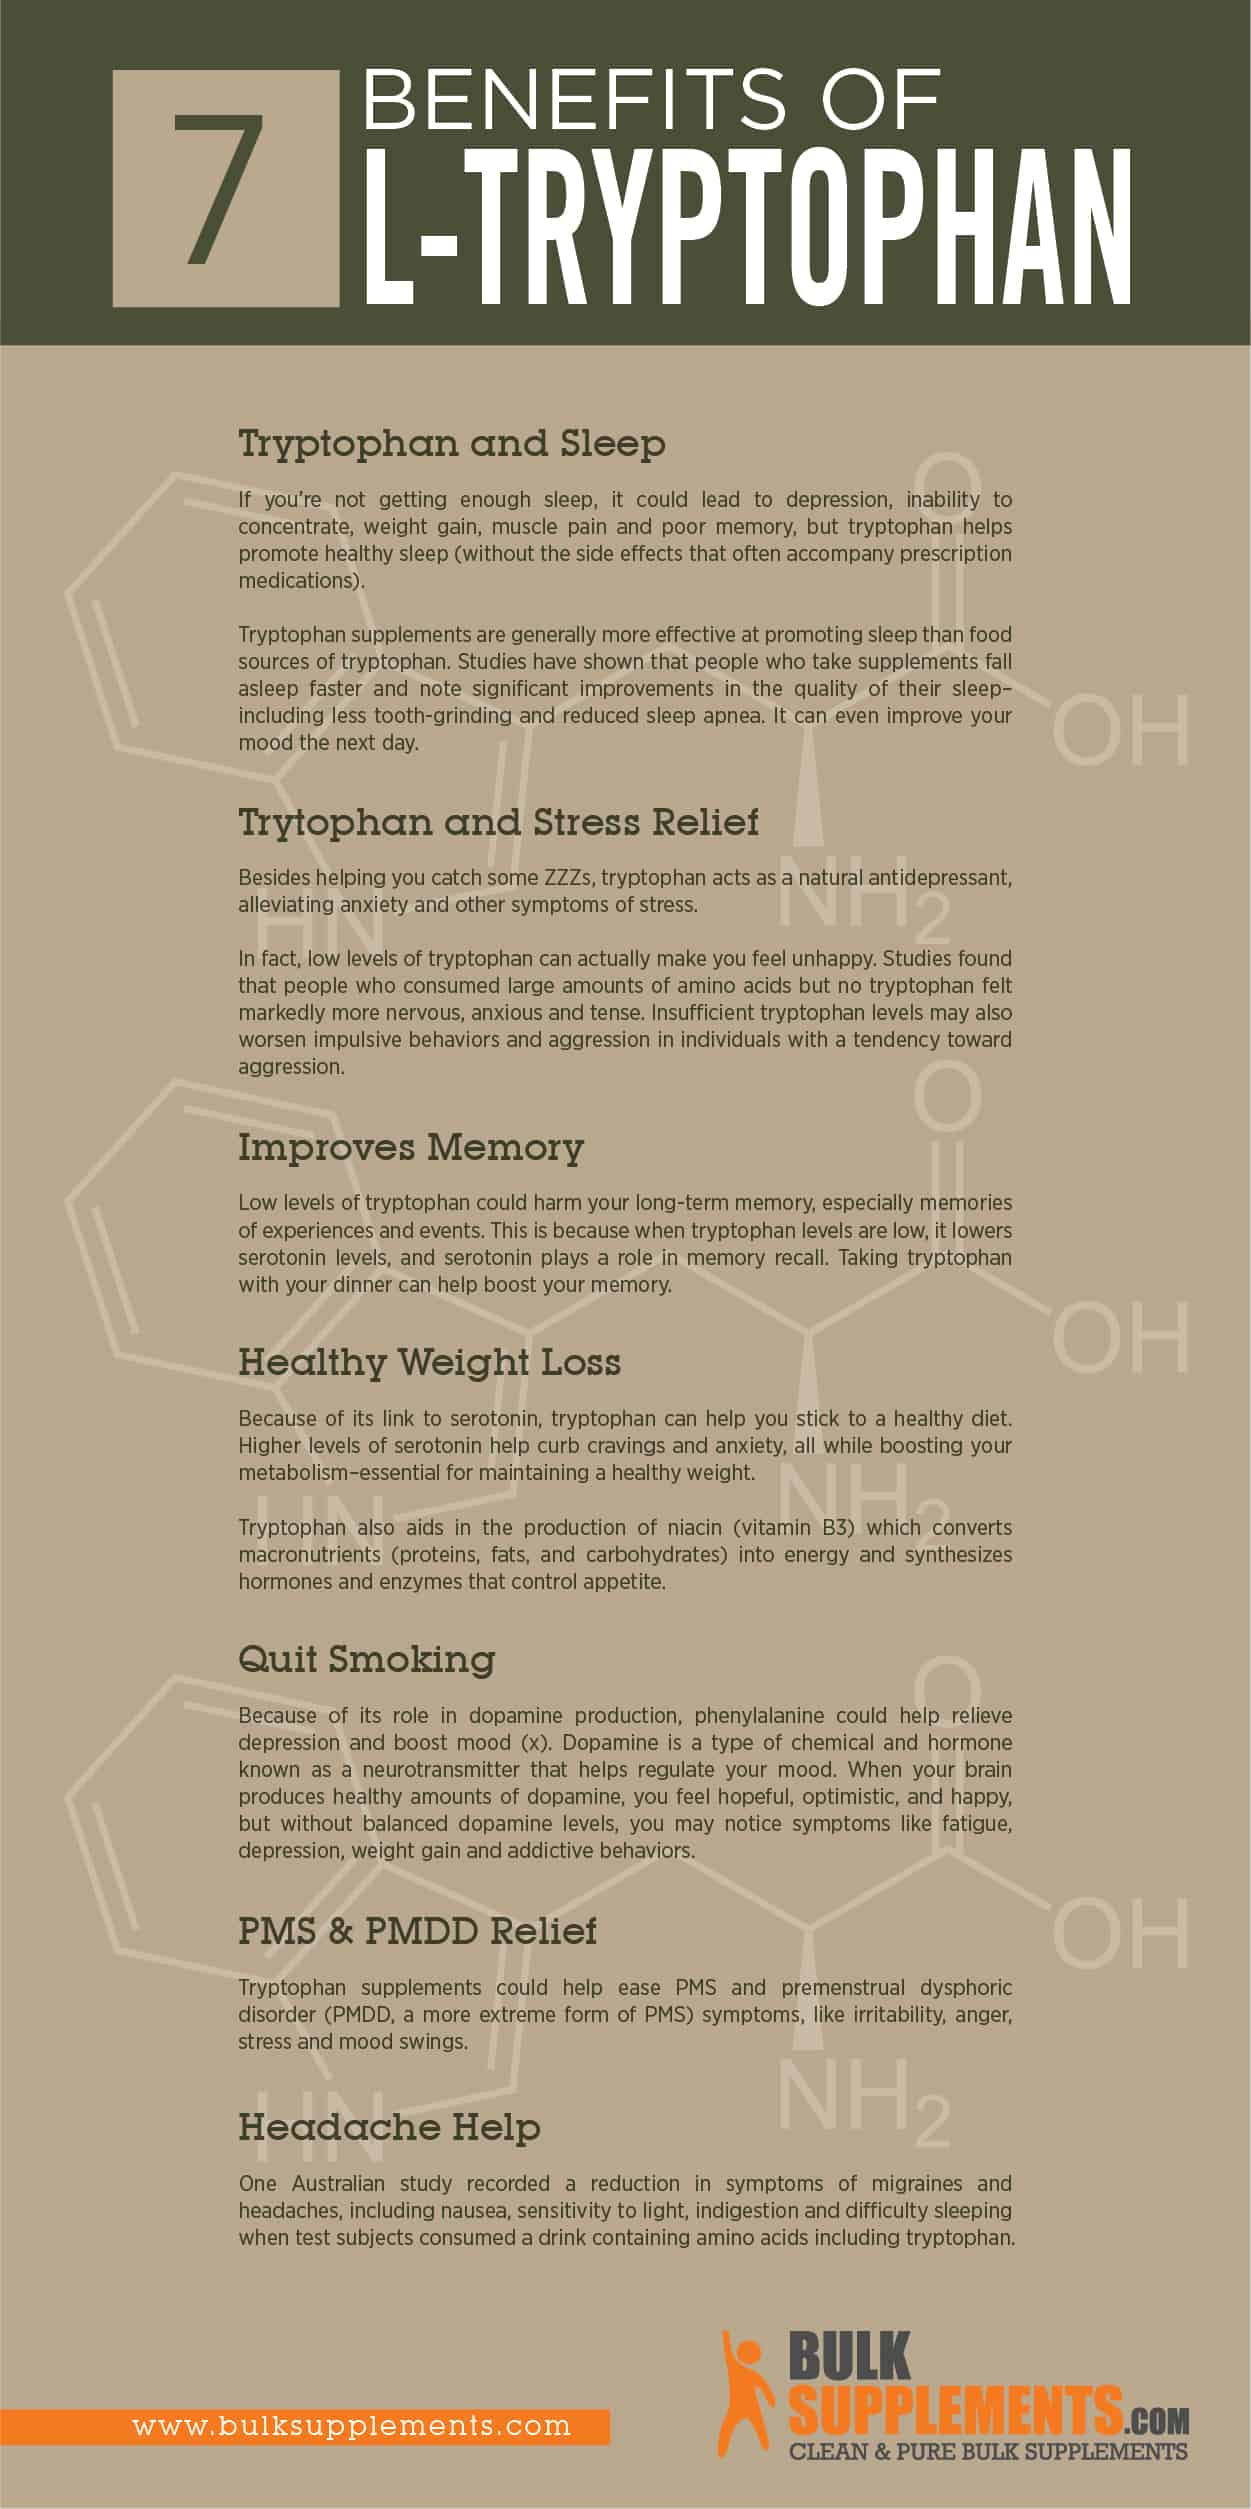 l-tryptophan benefits